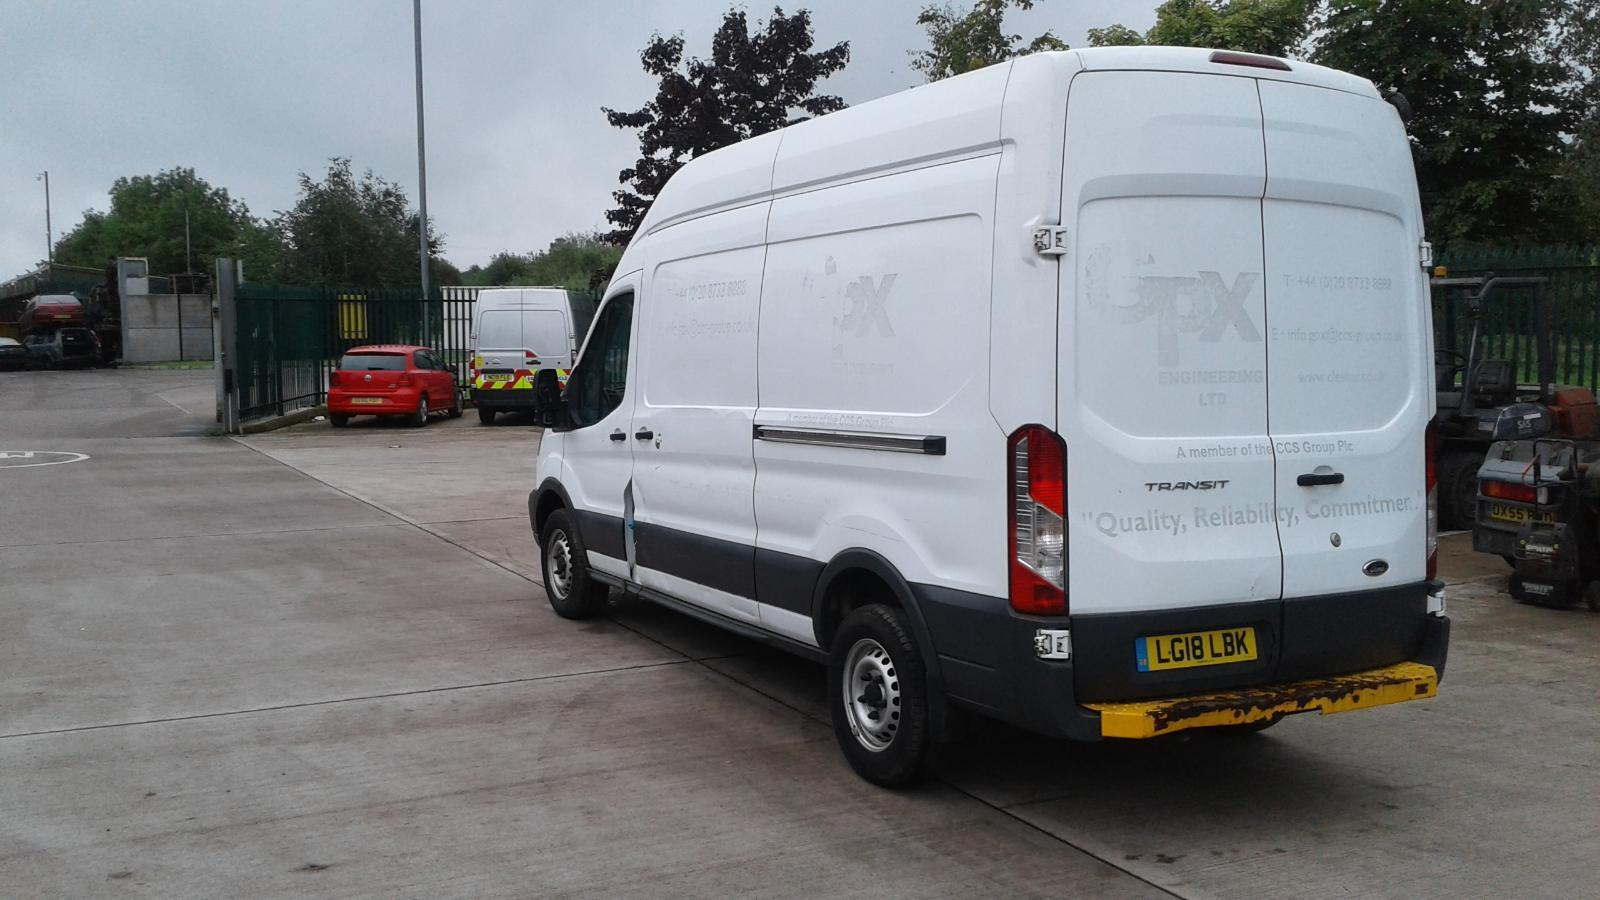 2018 FORD TRANSIT FOR SALE £11250+VAT ONO Image